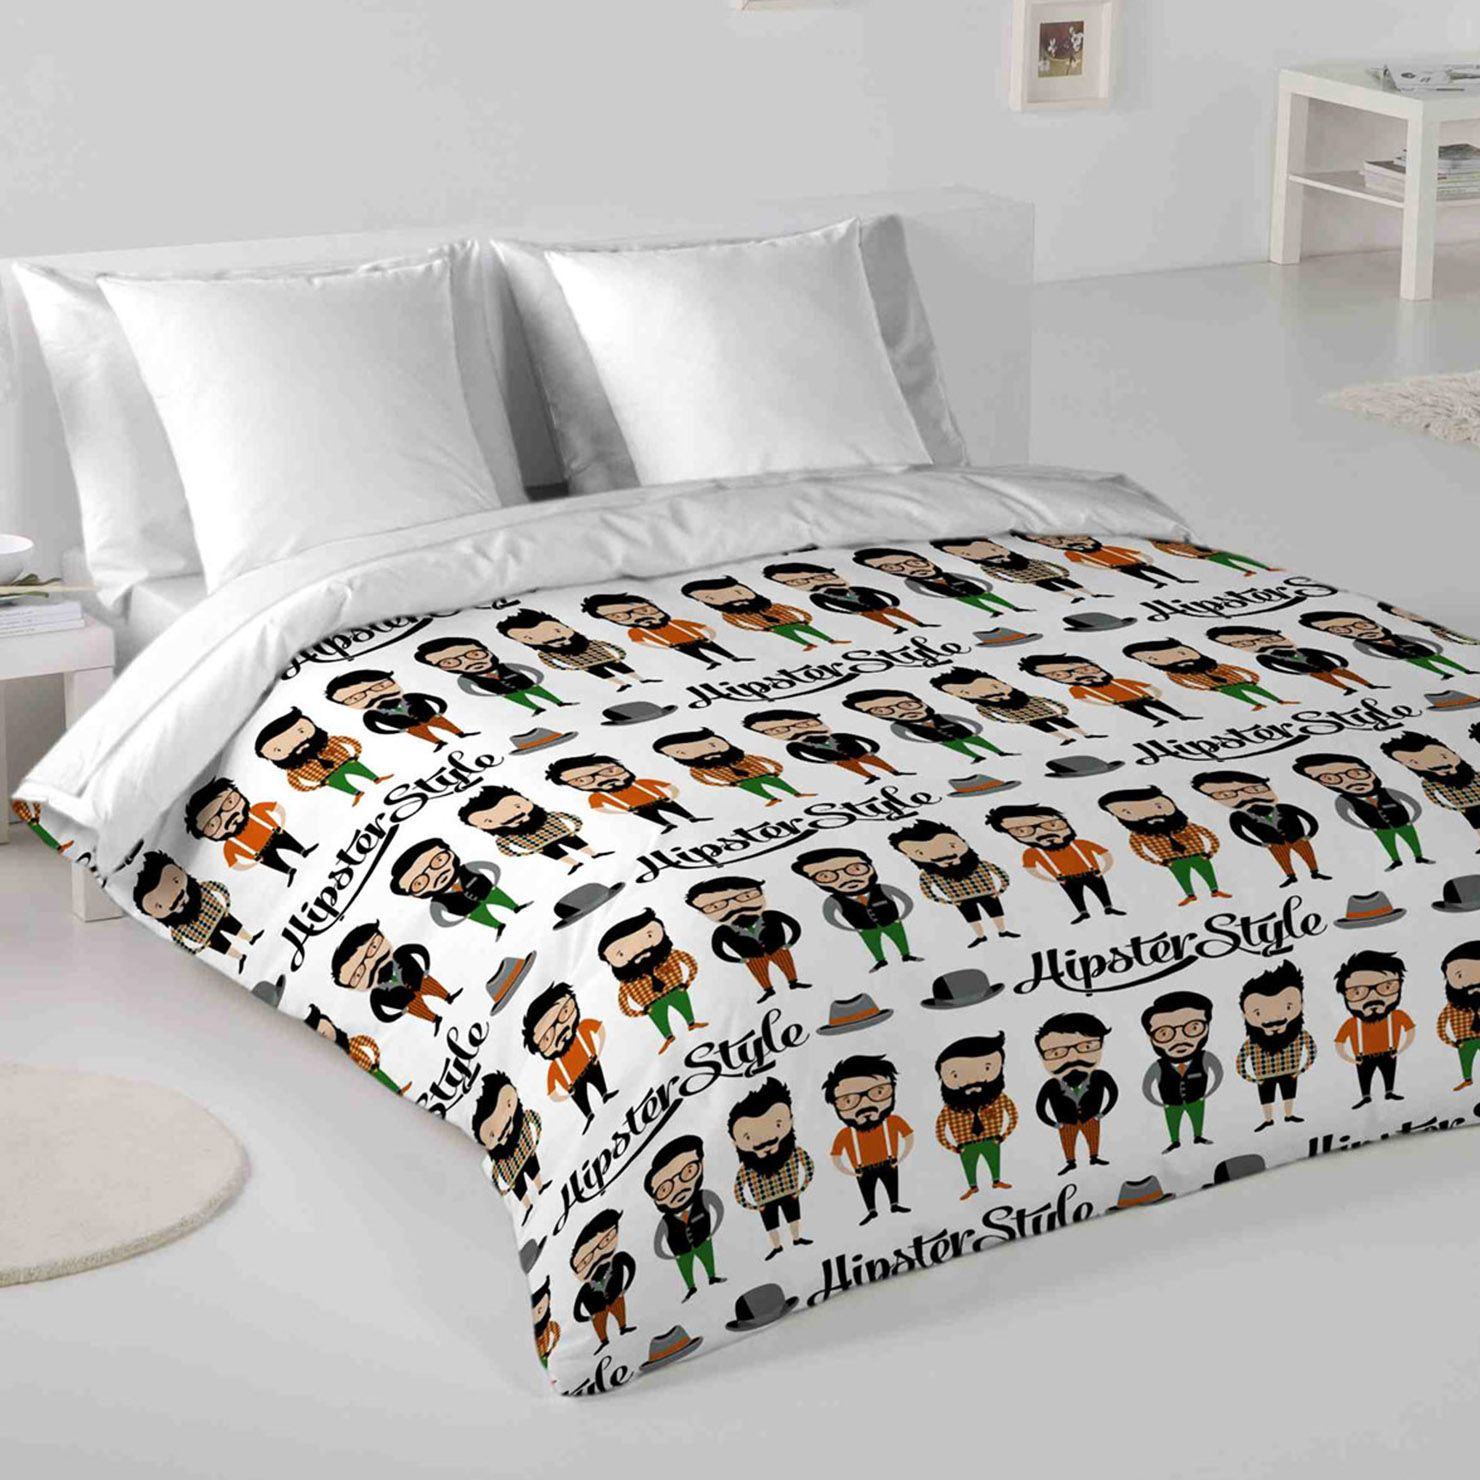 cheap unique duvet target blush queen uk grey covers bedding hipster cover sets